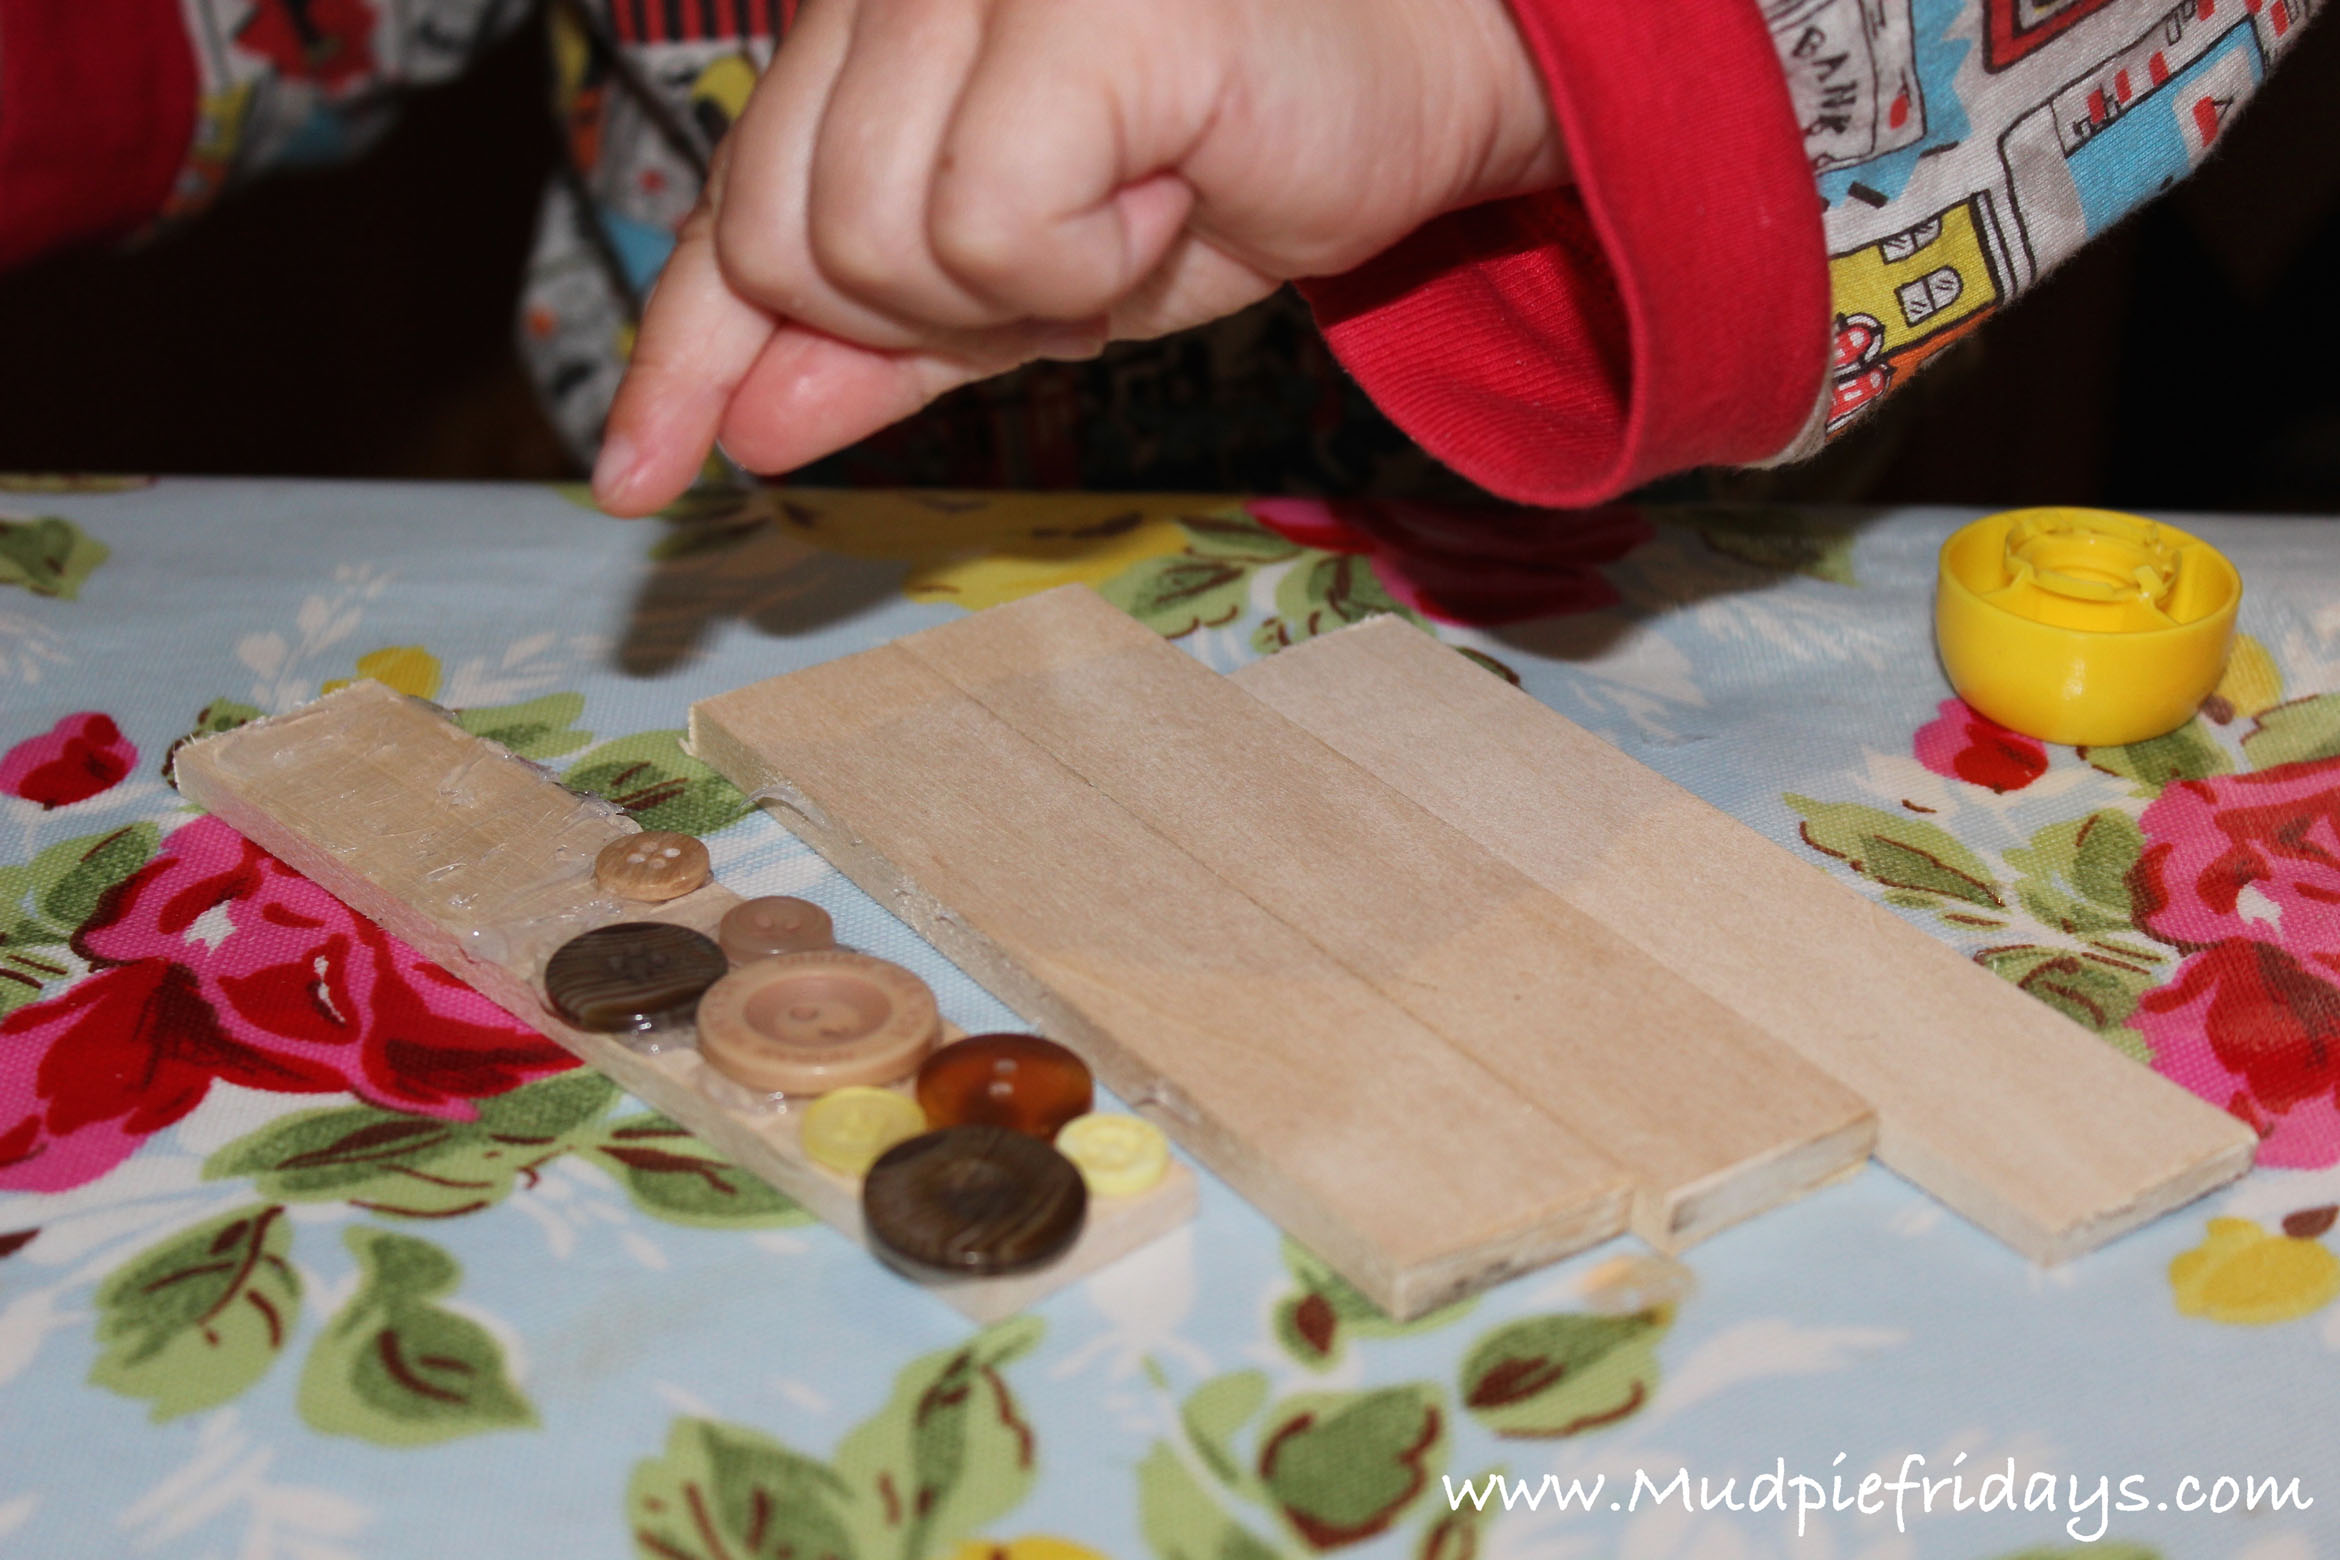 DIY Granola Bars Playfood